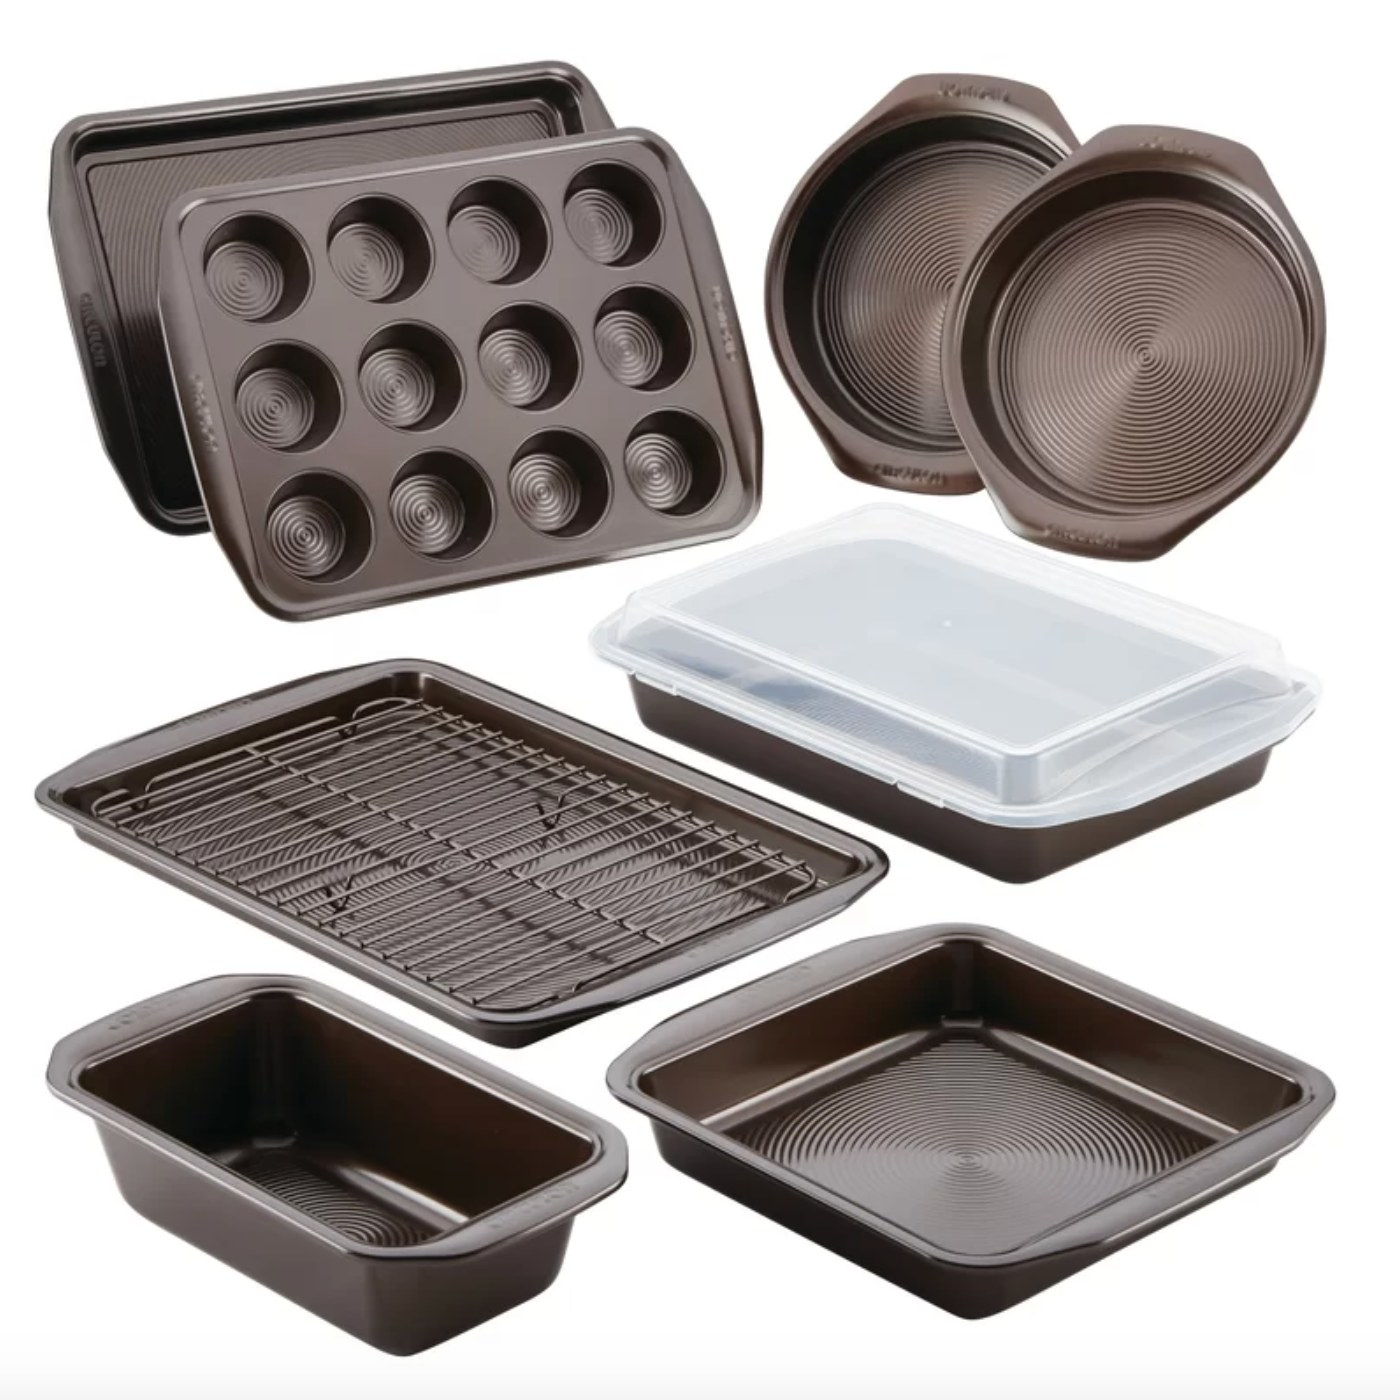 The ten-piece baking set with a muffin tray, loaf pan, and much more